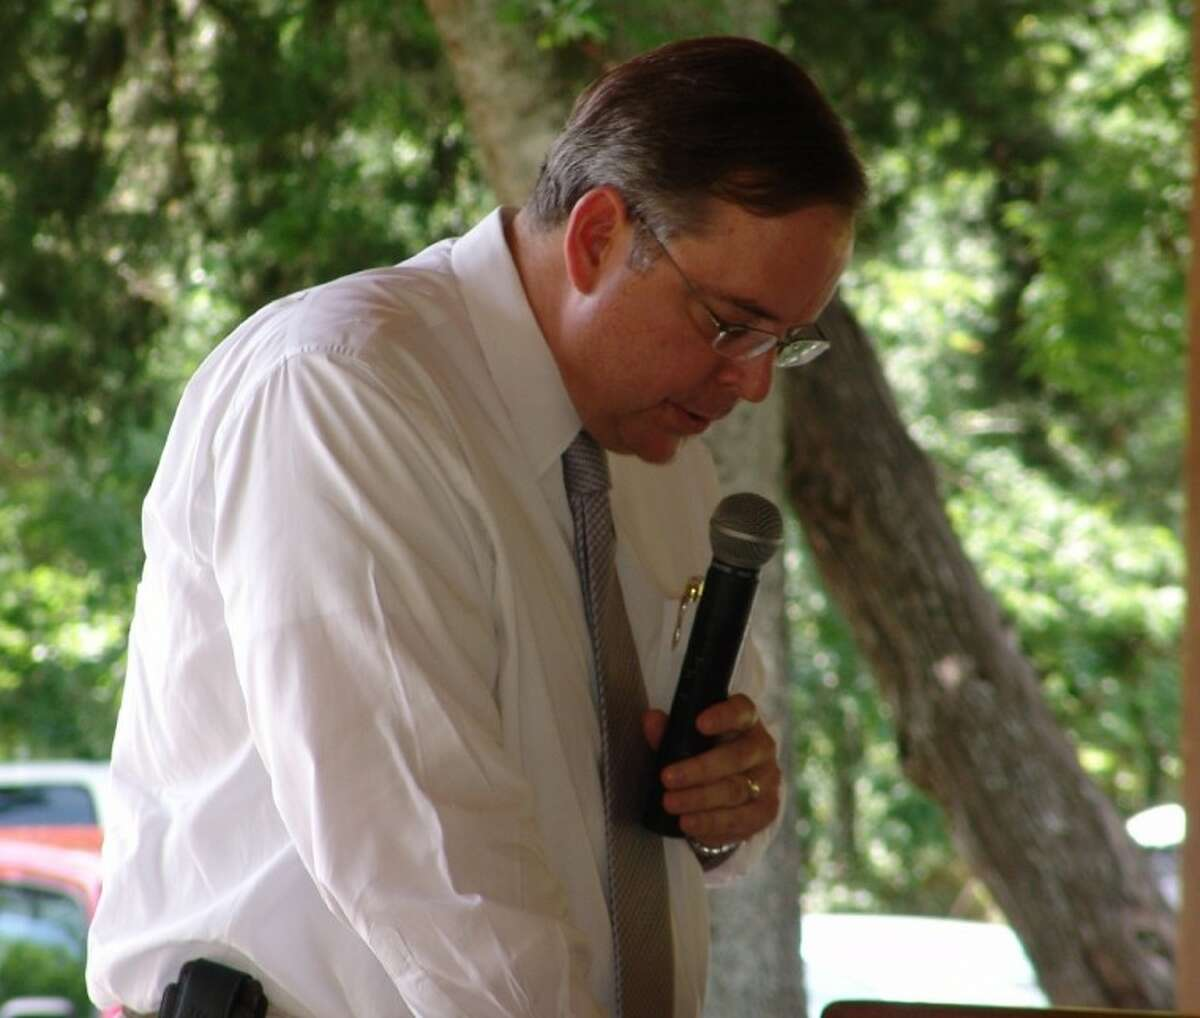 Galveston County District Attorney Jack Roady, pictured during a 2012 prayer service in Friendswood, is a key figure in a lawsuit challenging the county's bail policies.